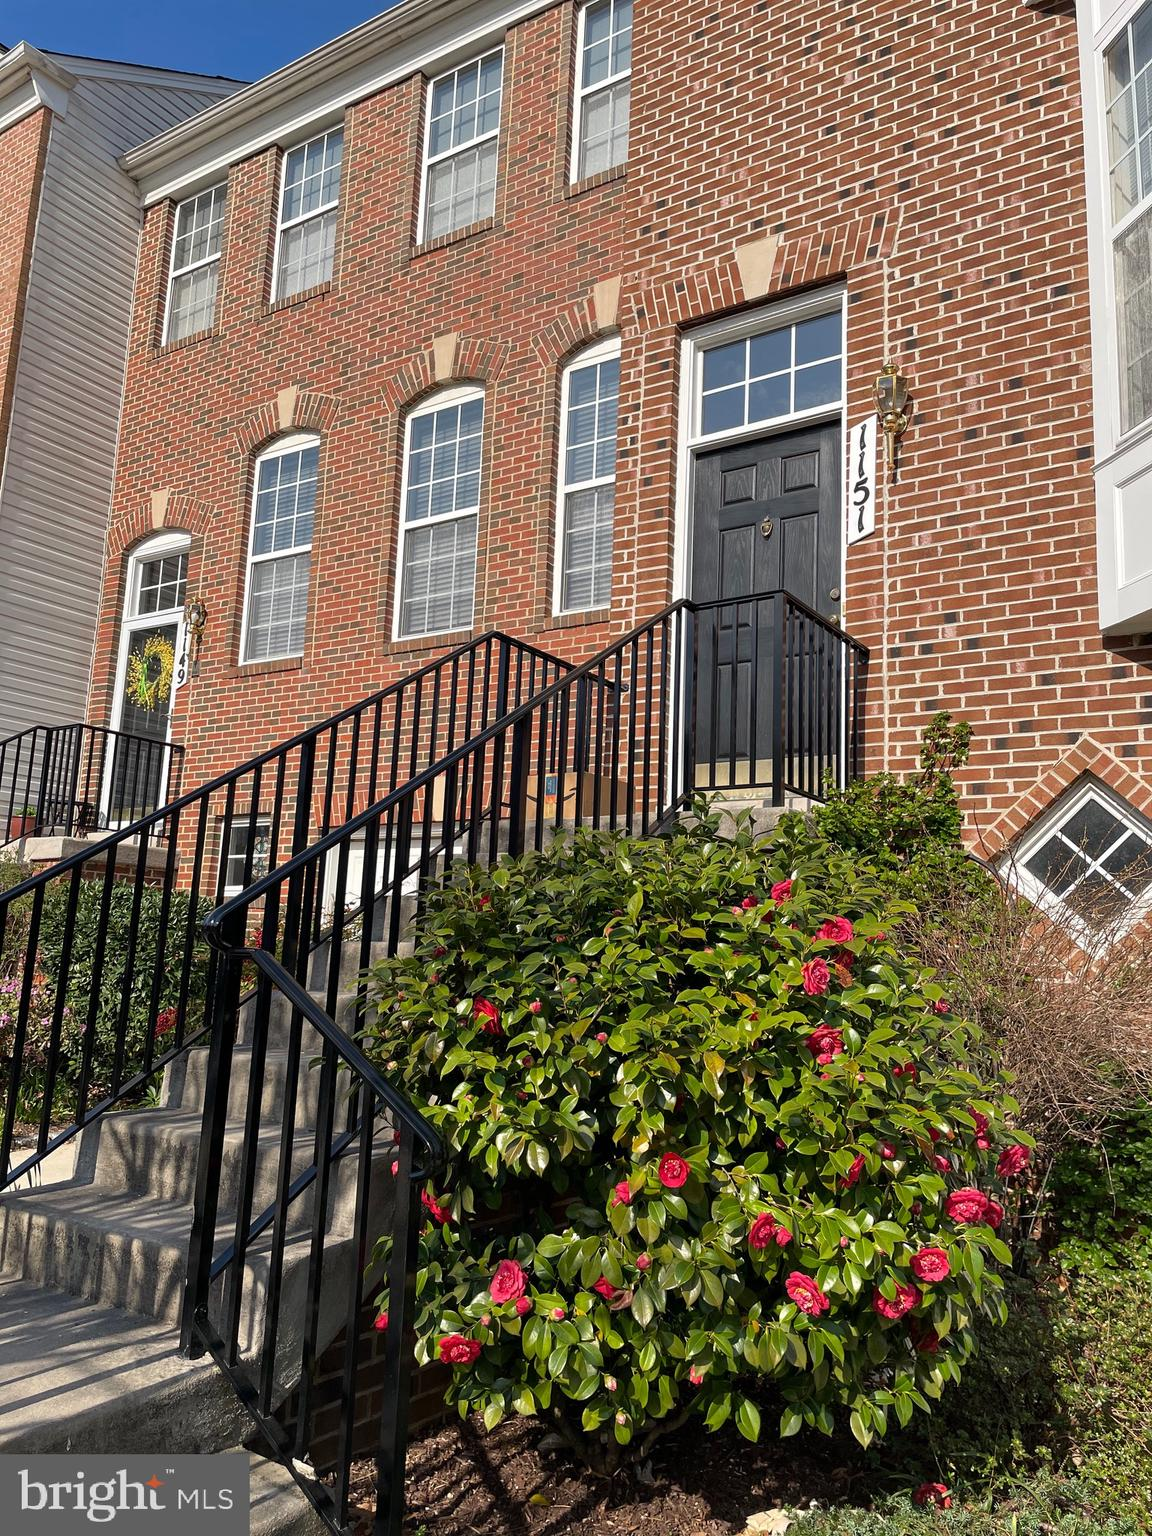 August Woods - 3 Level Townhome with Garage - Freshly Painted - Fireplace - Gourmet kitchen - Main W